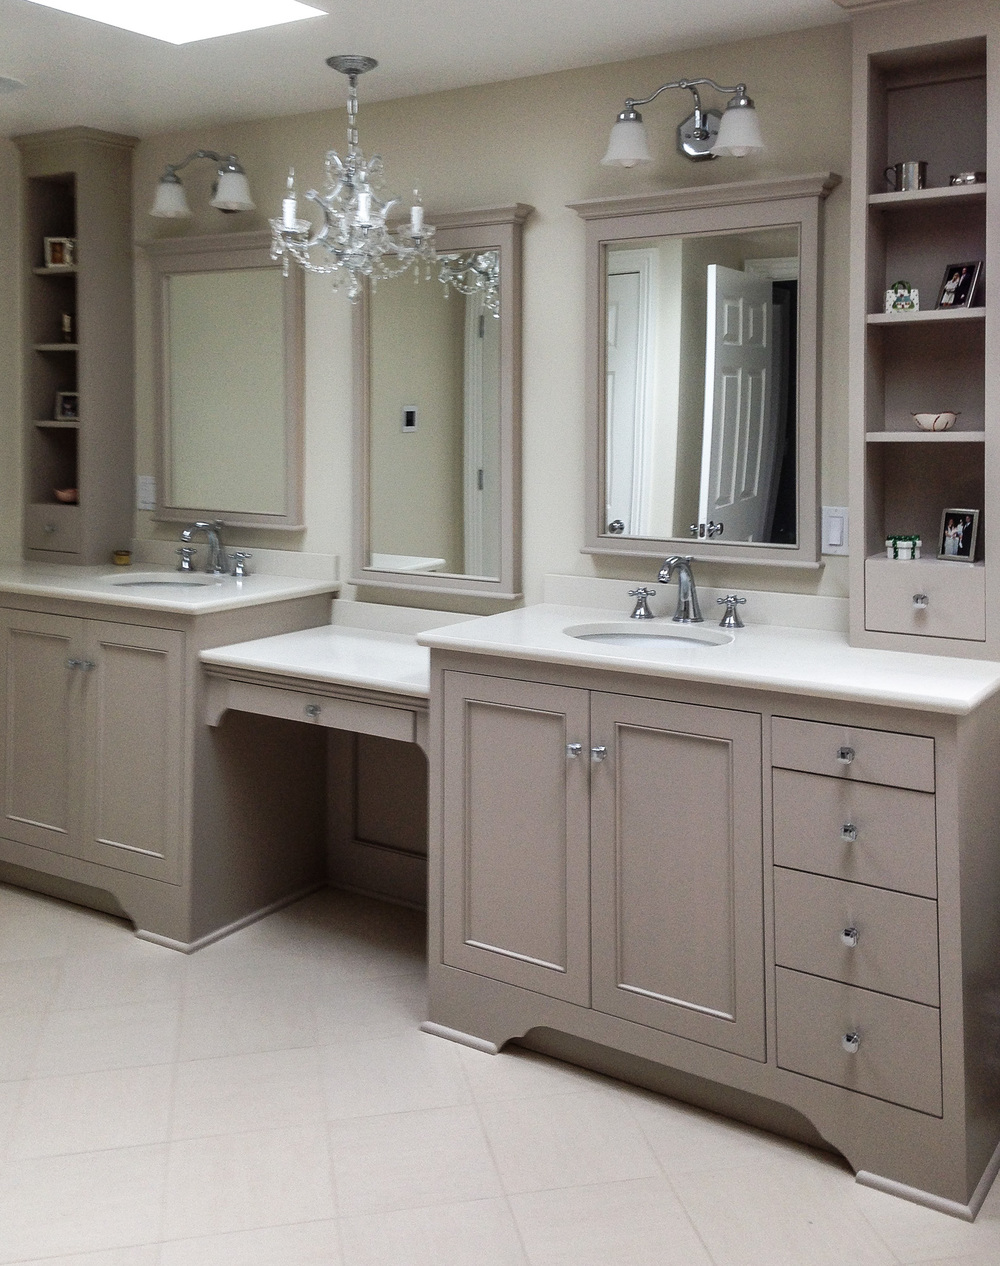 Custom Bathroom Vanity & Cabinets